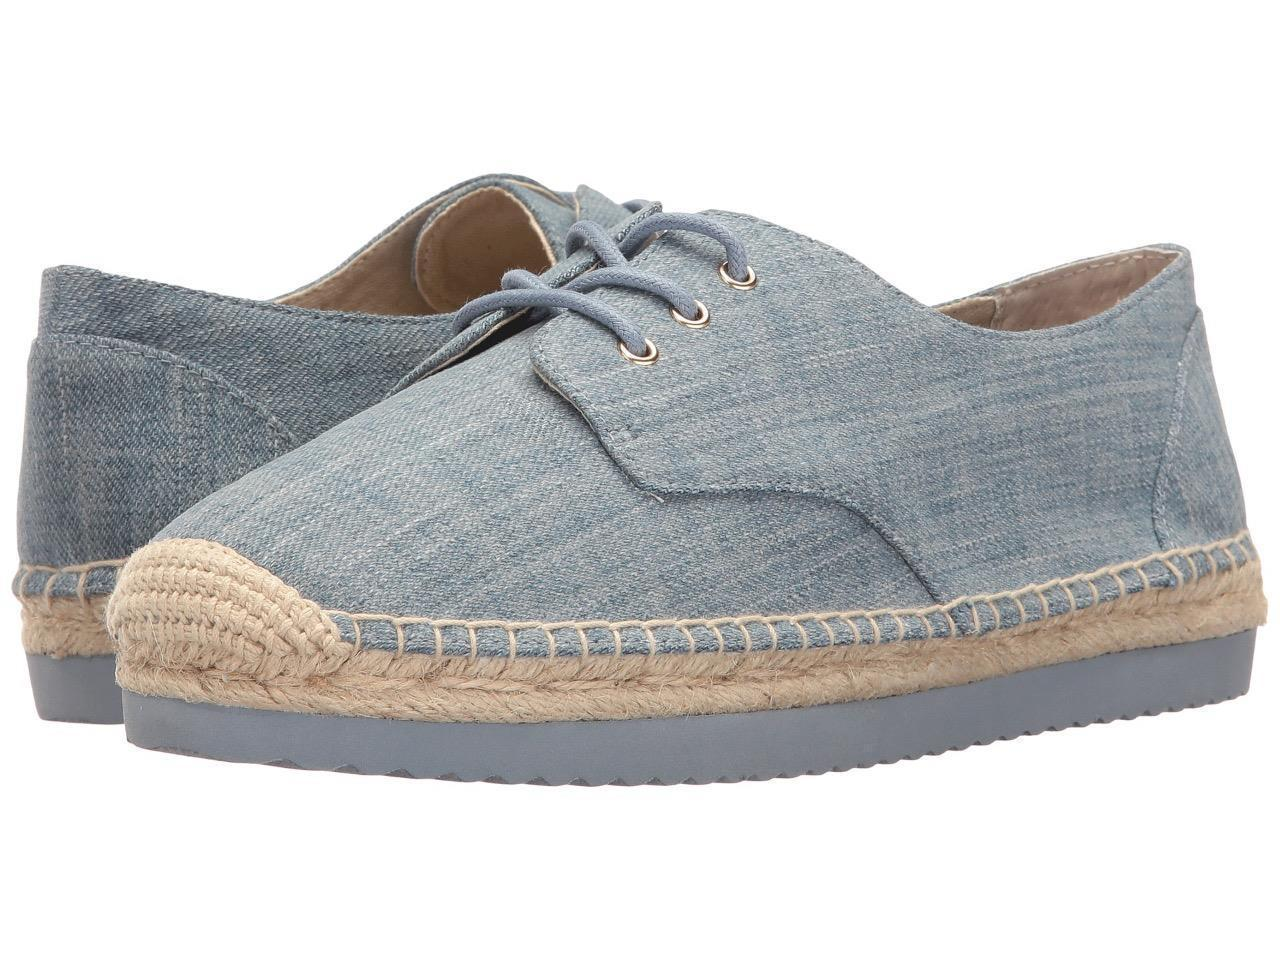 Michael Kors MK Women's Premium Hastings Lace-Up Fashion Sneakers Shoes Denim